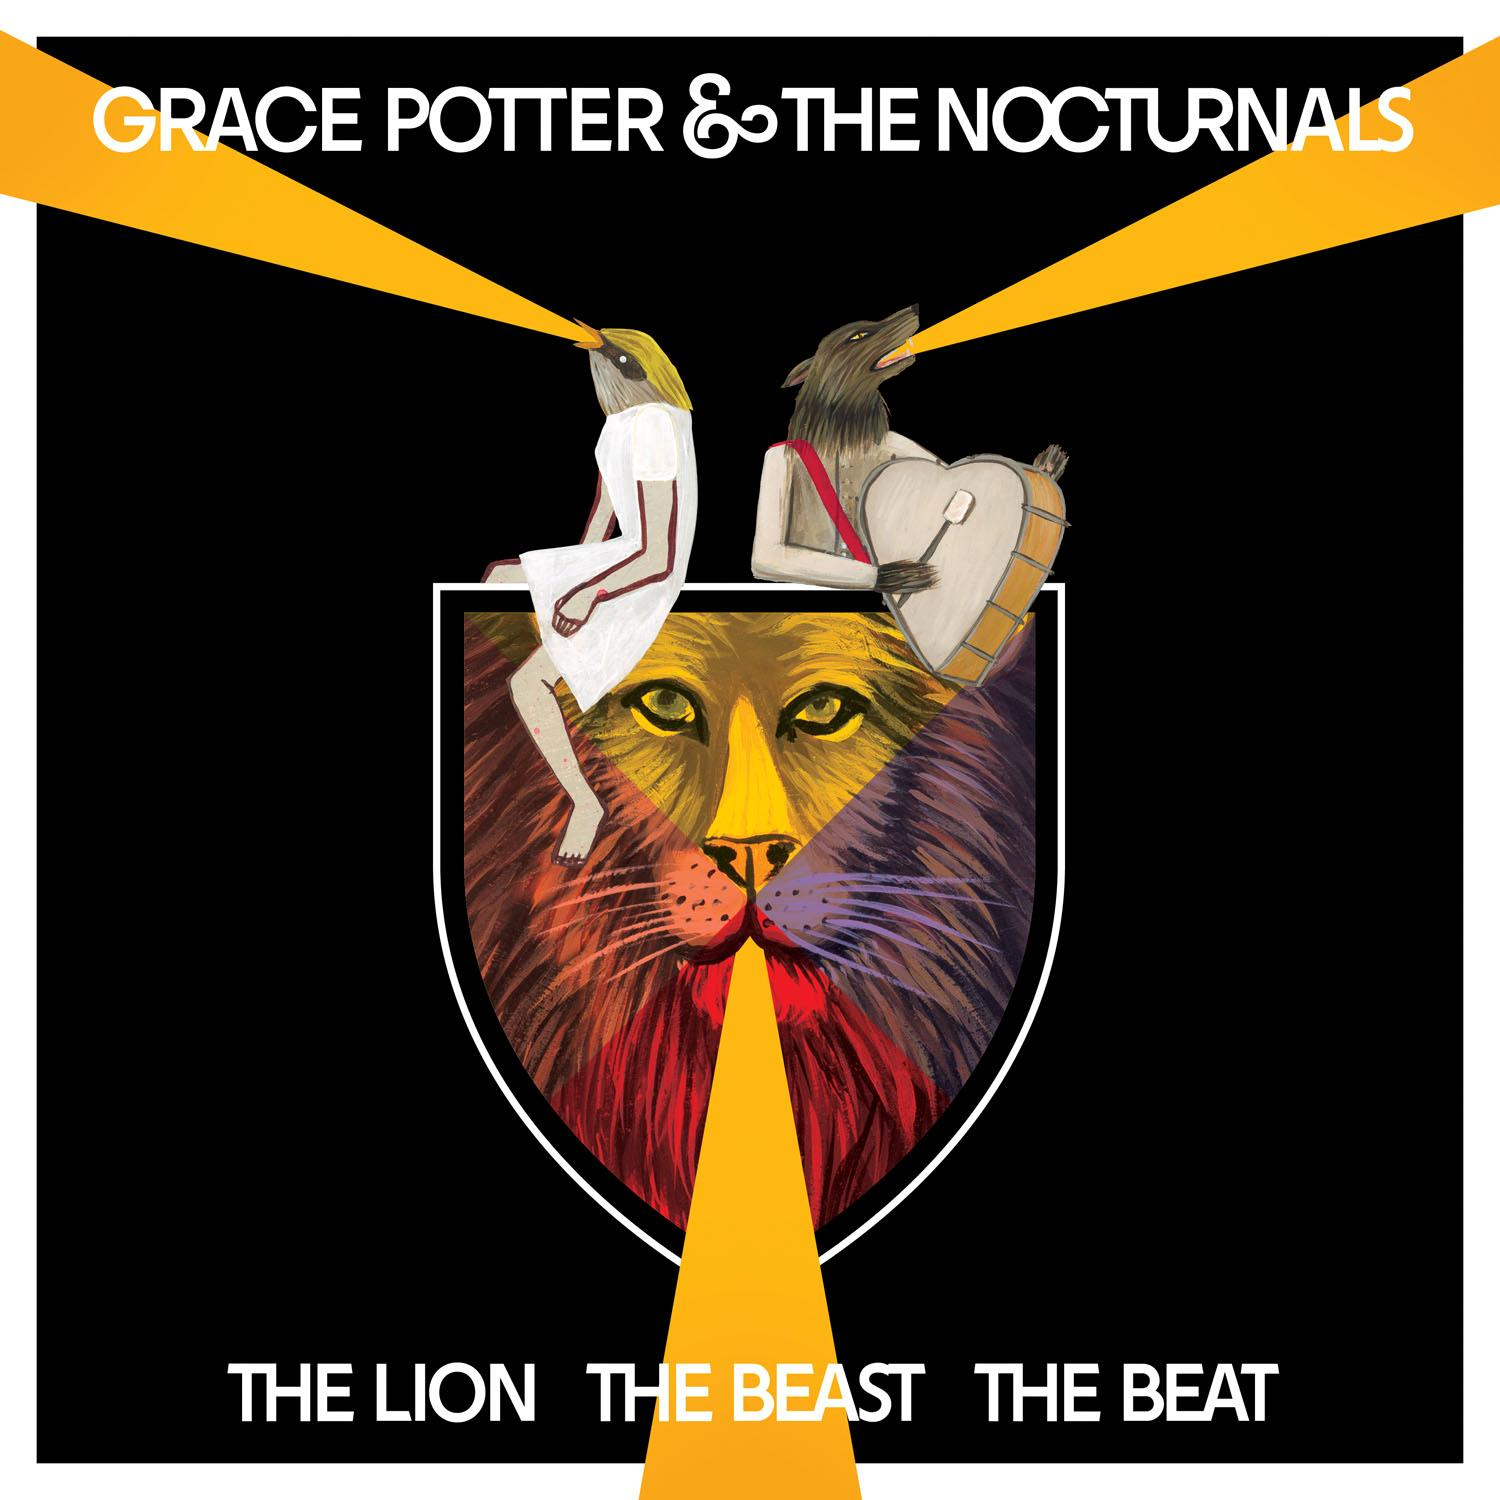 jaquettes3/Grace-Potter-and-The-Nocturnals_The-Lion-The-Best-The-Beat.jpg